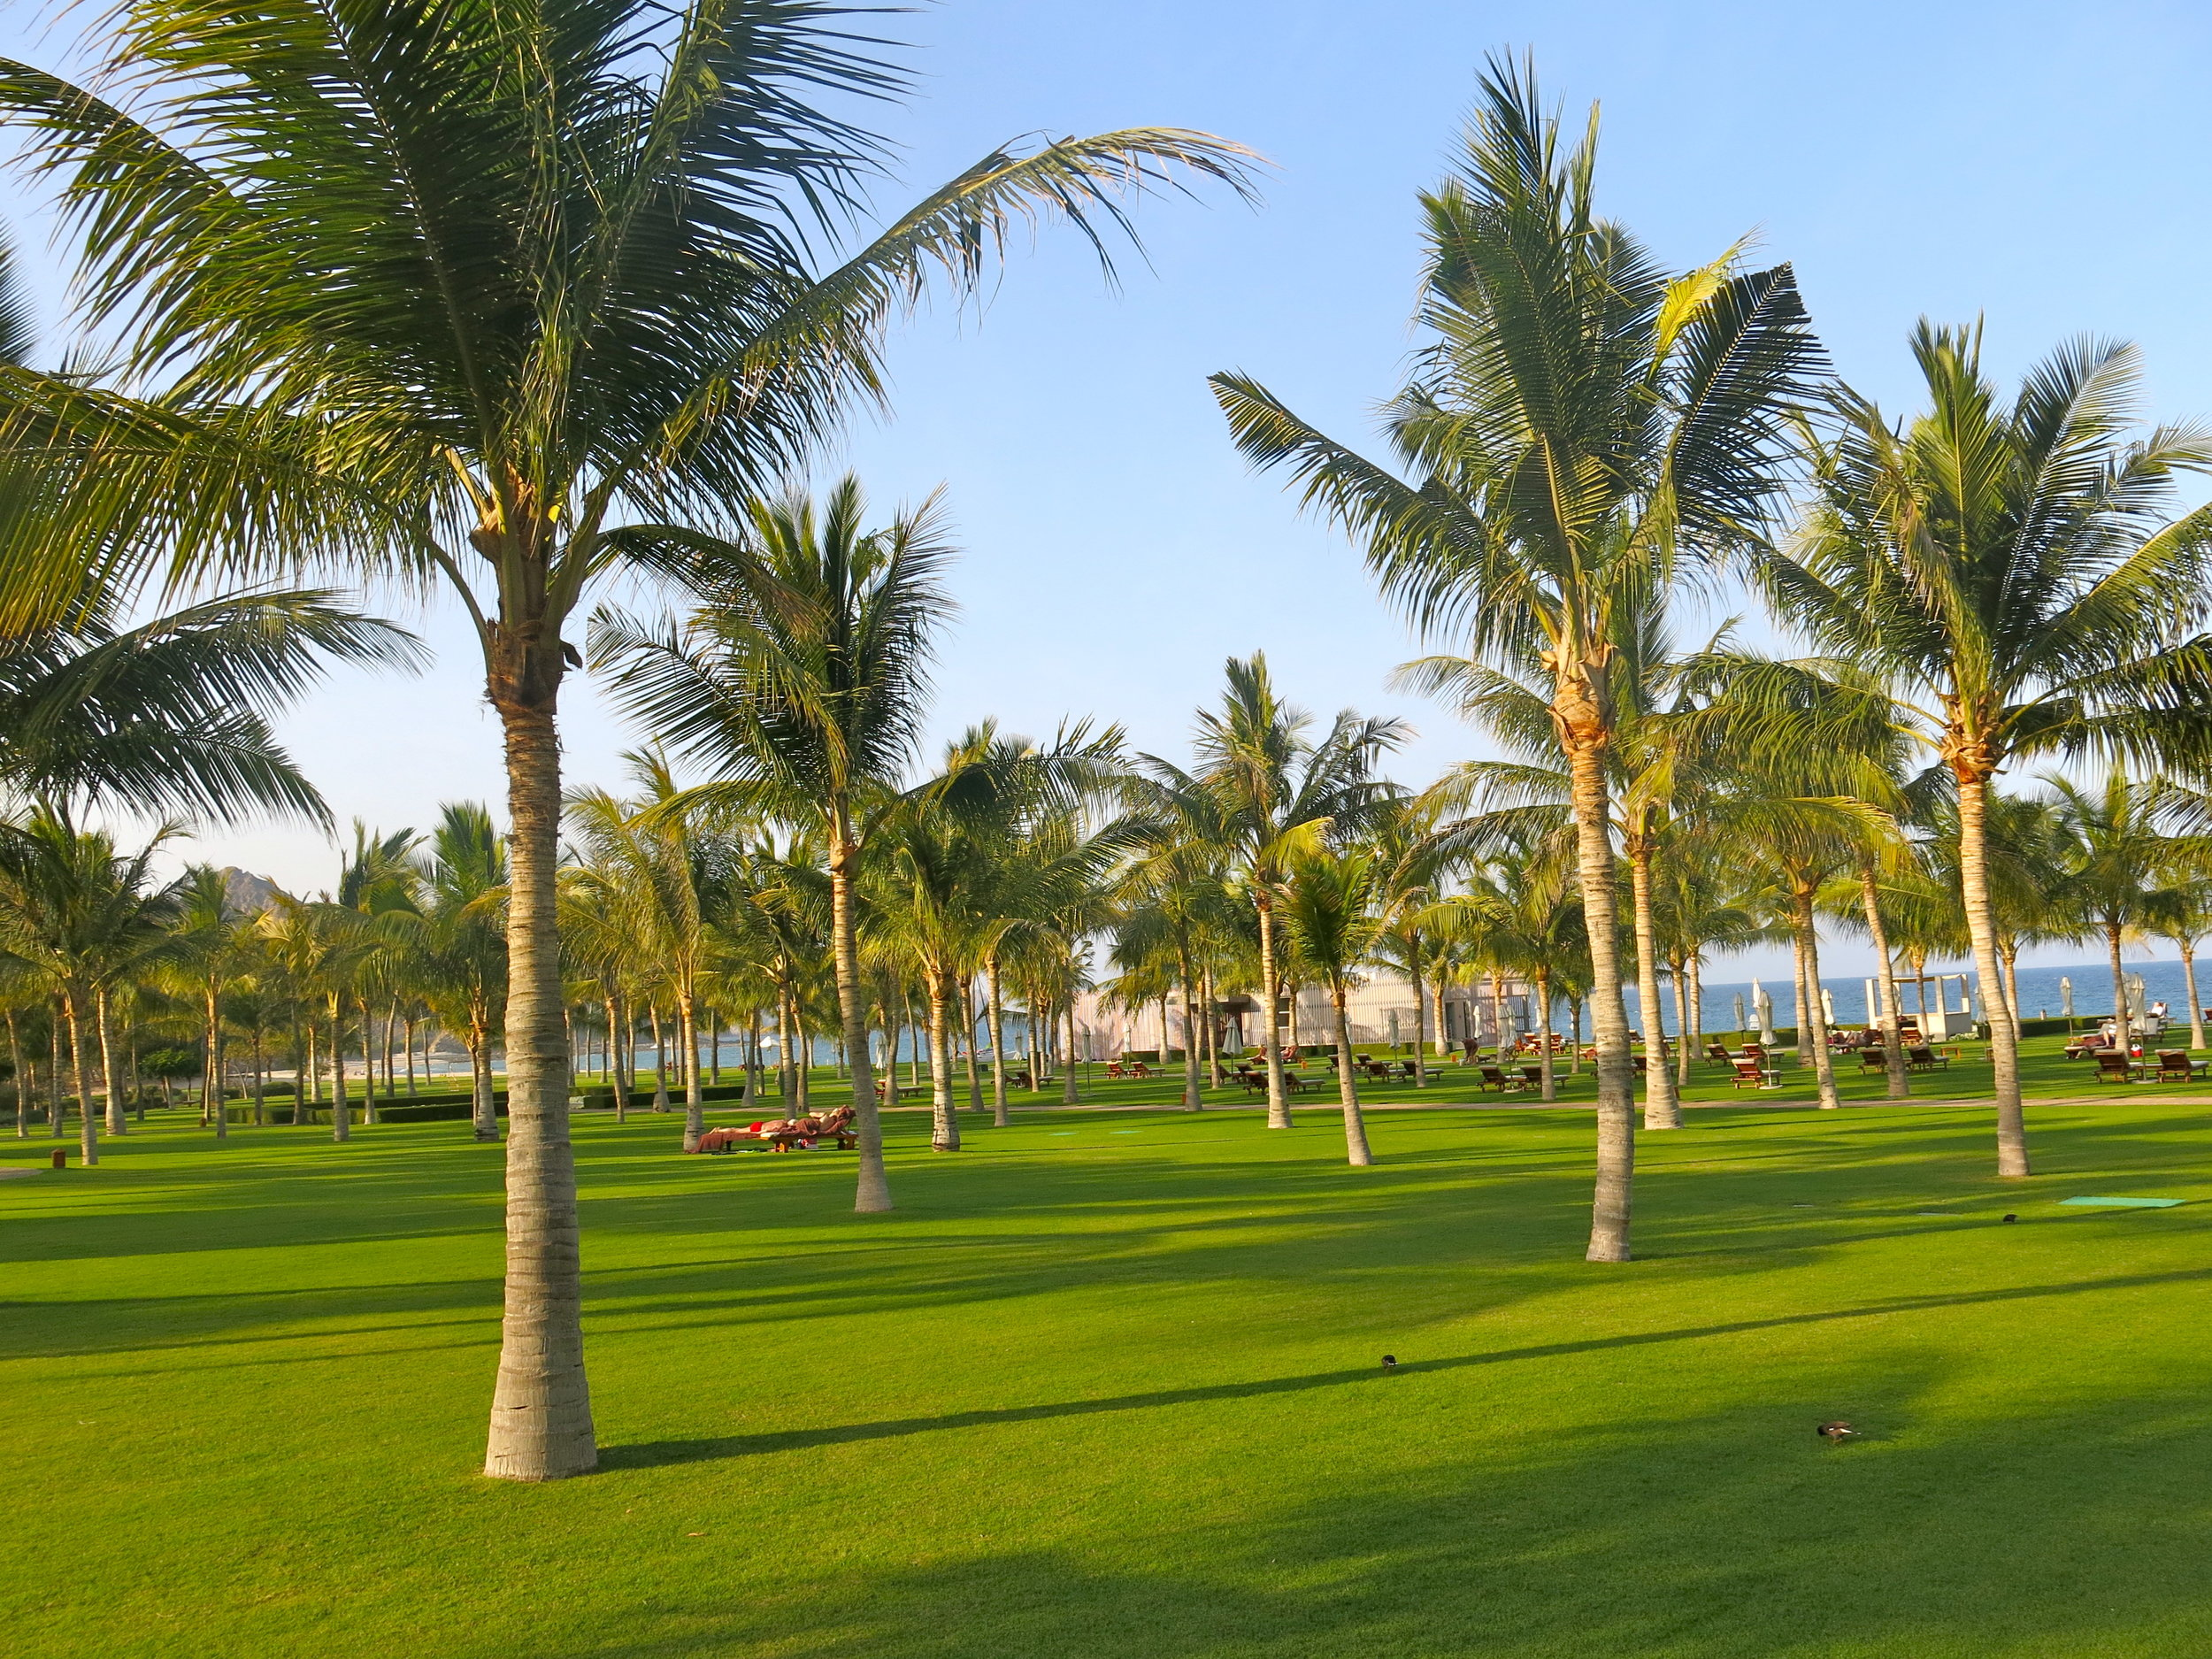 The greens are perfectly maintained and invite to relaxation